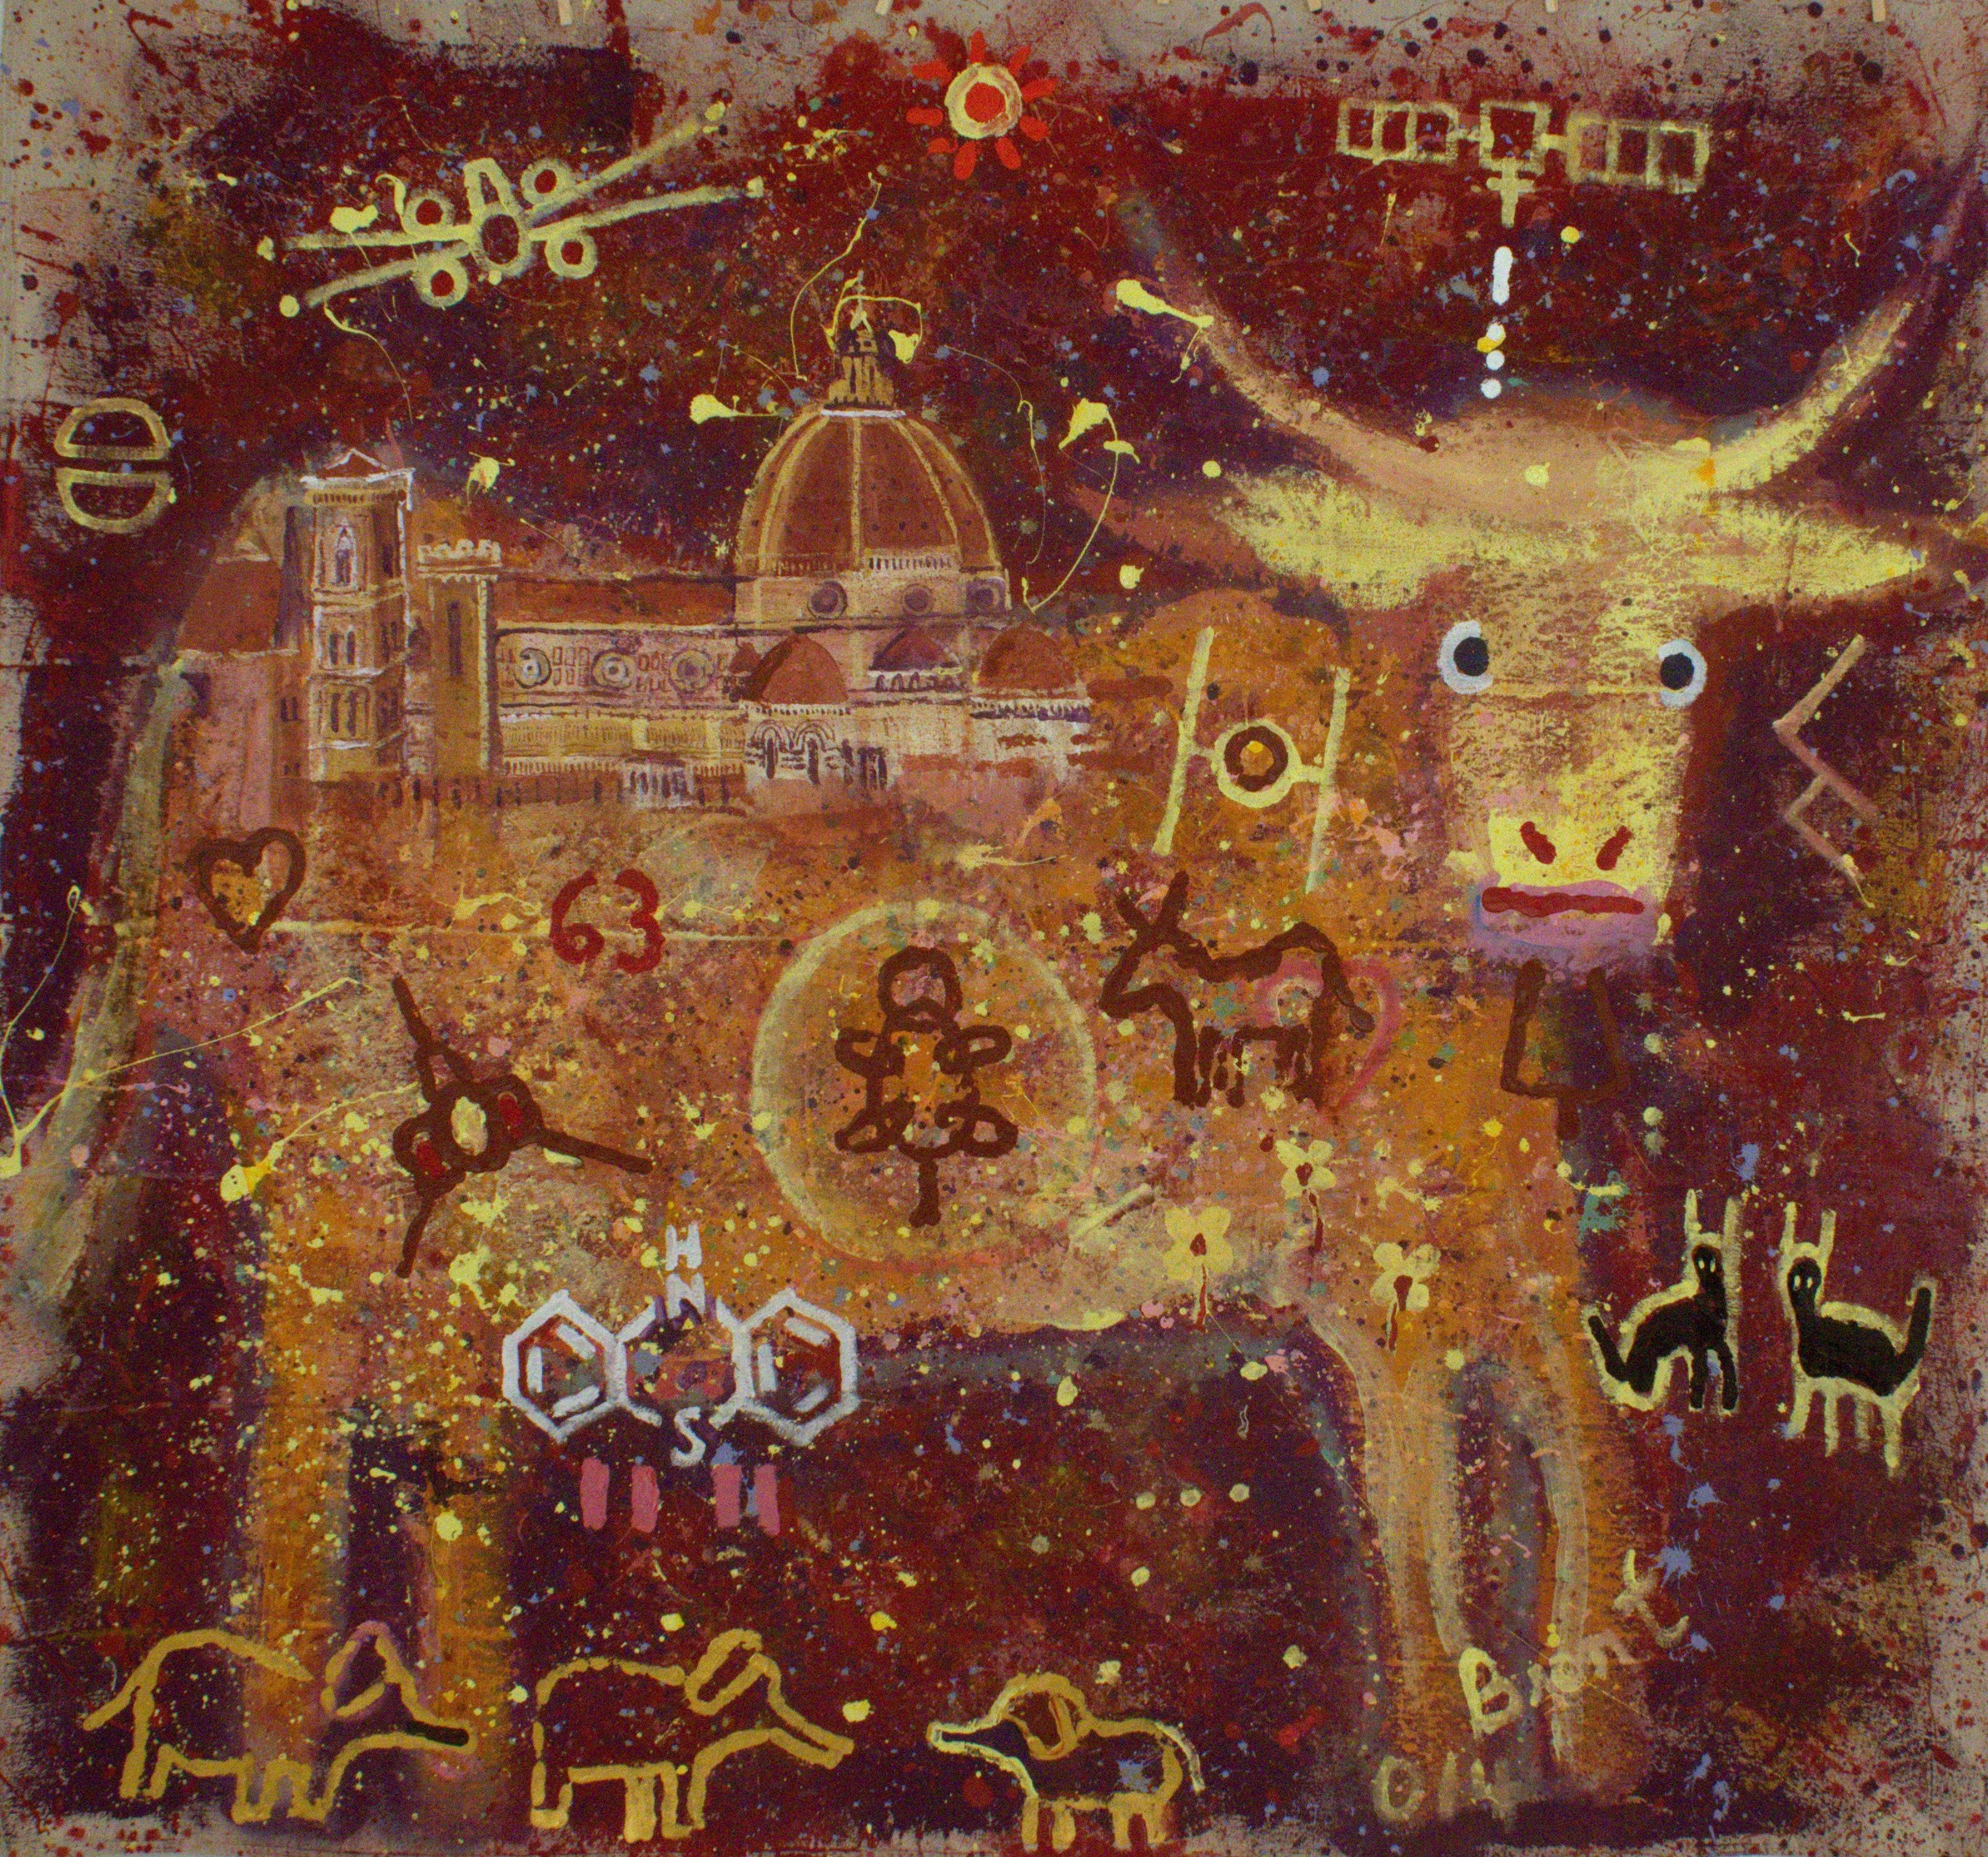 Pregnant Heifer at the Duomo artwork by Brent Weston - art listed for sale on Artplode